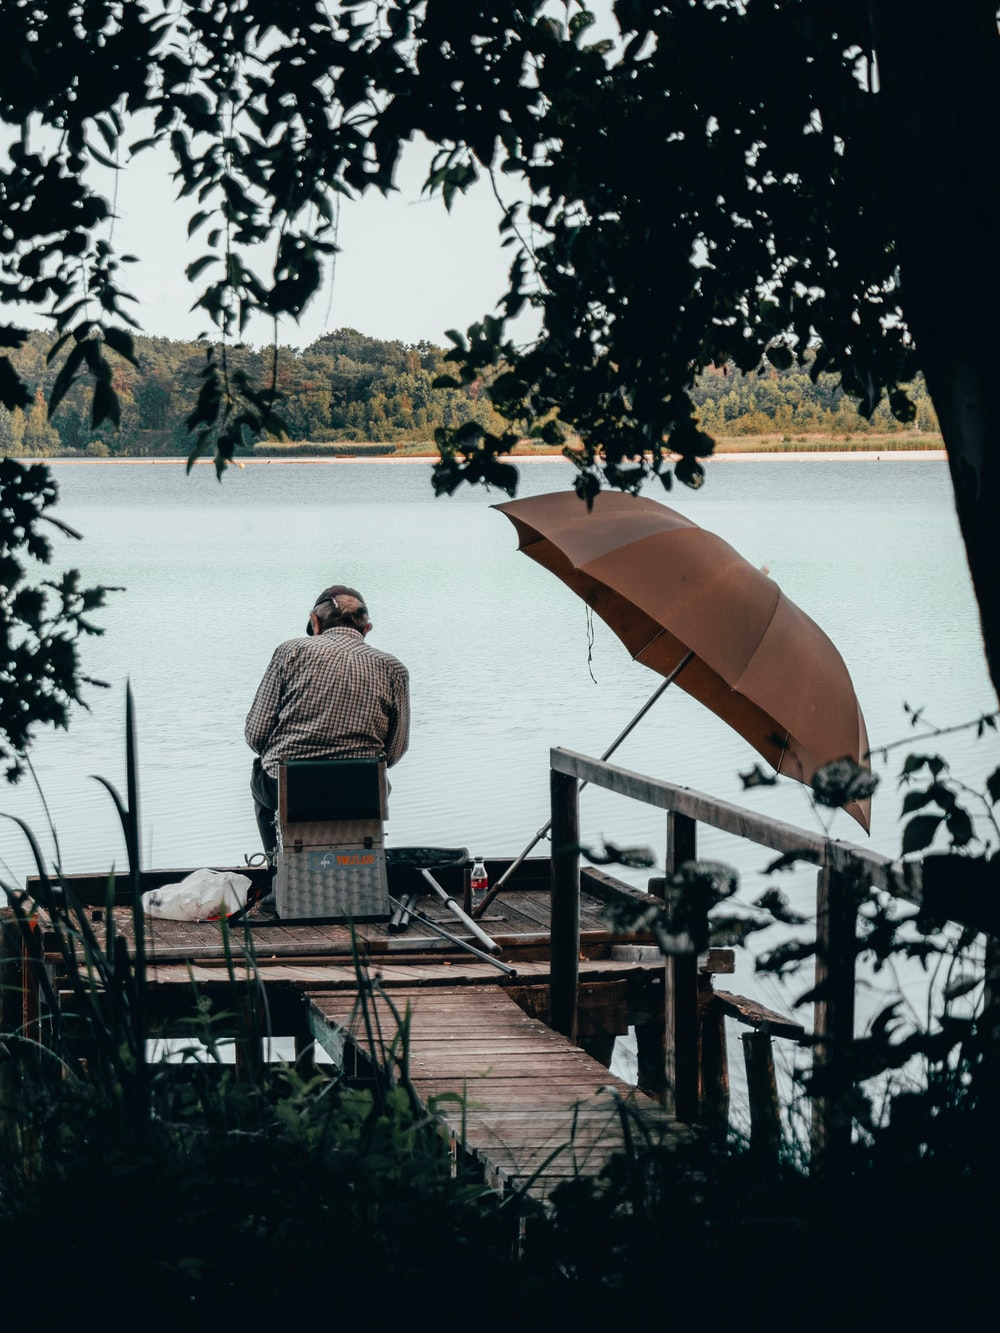 man in gray shirt sitting on brown wooden bench near body of water during daytime